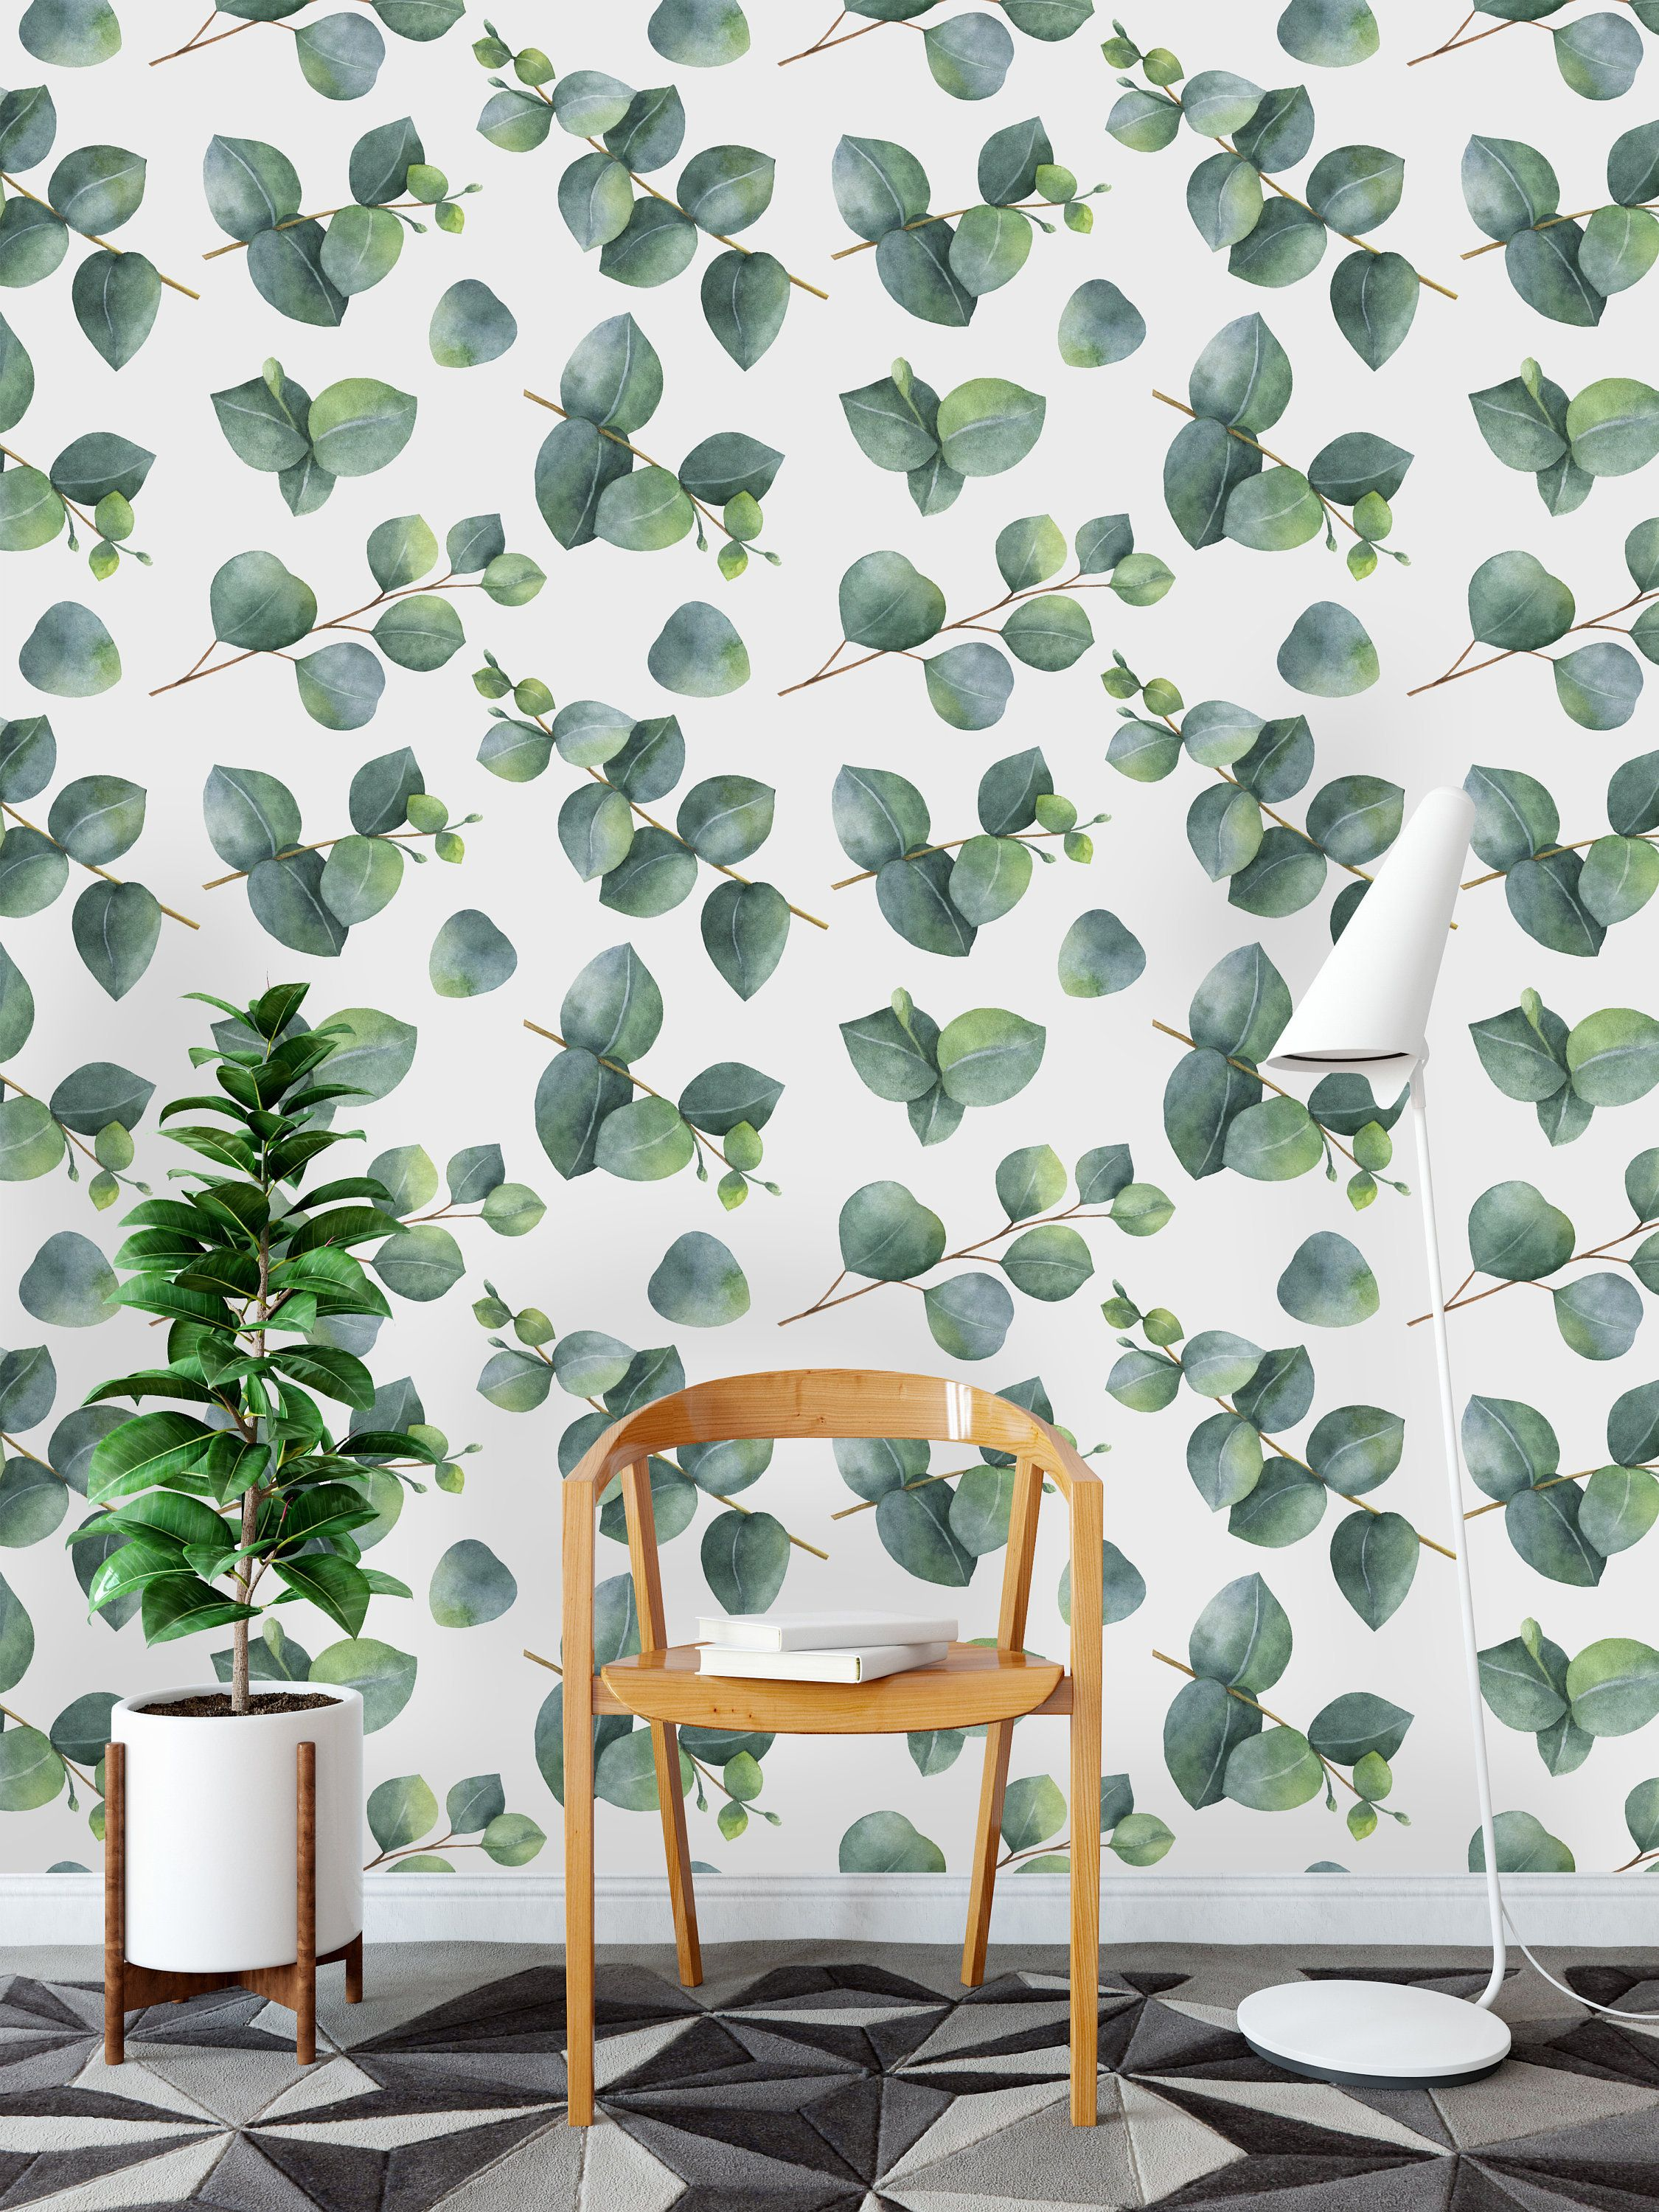 Eucalyptus Leaves And Branches Removable Wallpaper Peel And Etsy Wall Murals Wall Wallpaper Mural